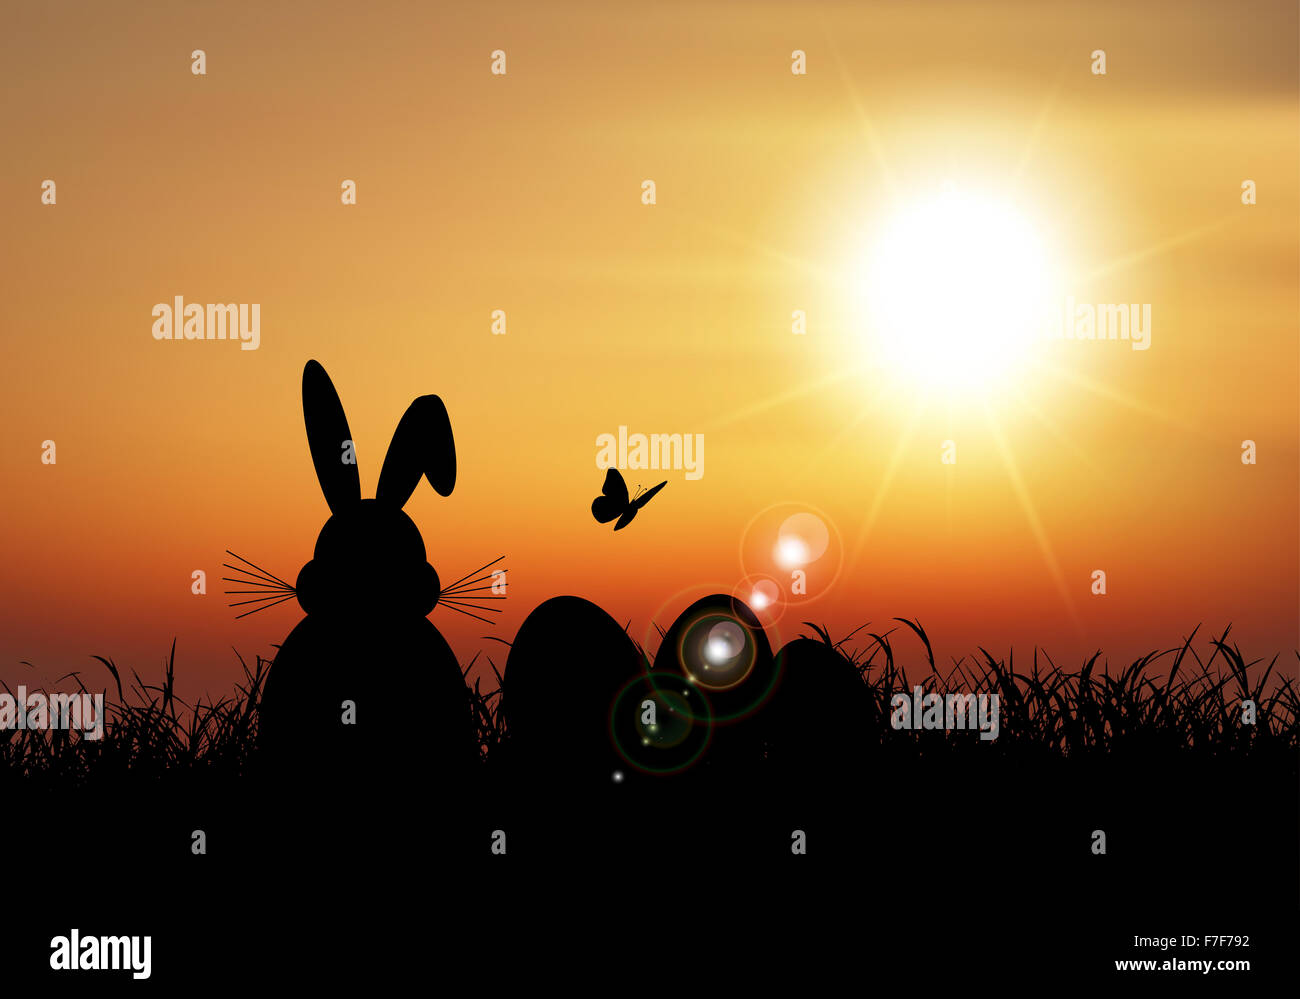 Silhouette of the Easter bunny sat in the grass against a sunset sky - Stock Image